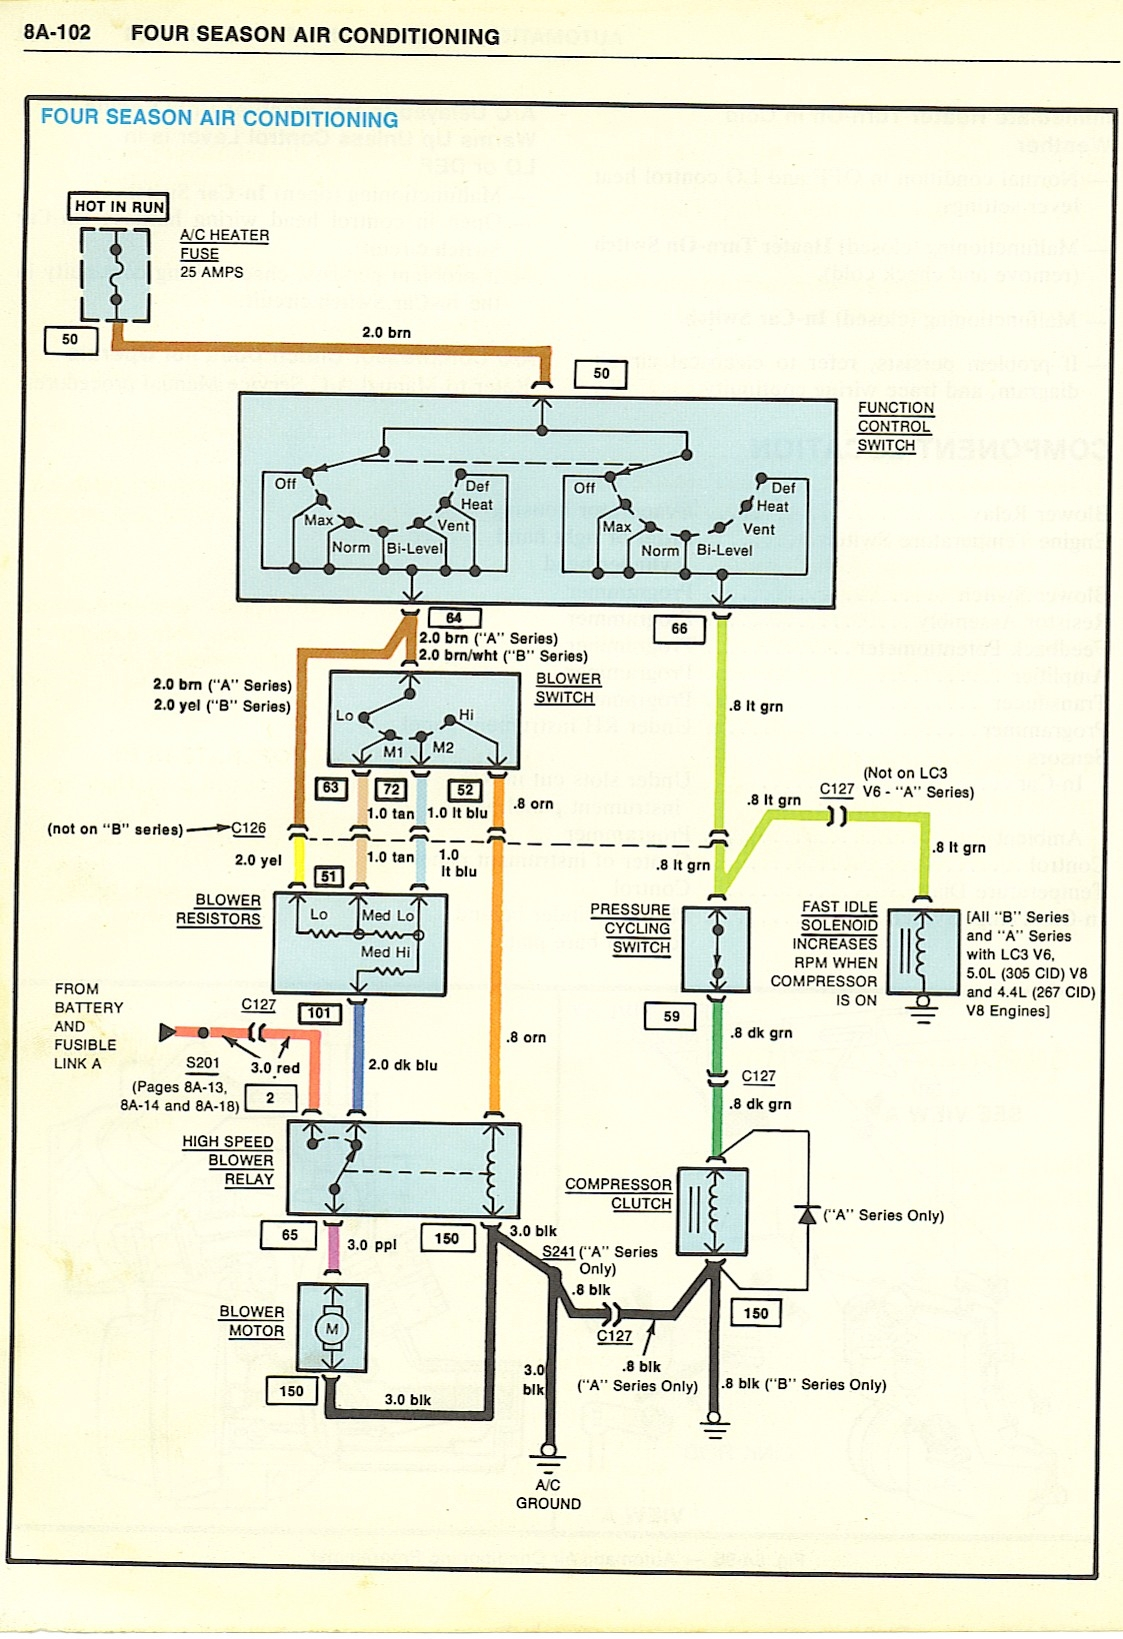 Air Conditioner Wiring Diagram Pdf 1966 Corvette Ac Wiring Search Wiring Diagrams